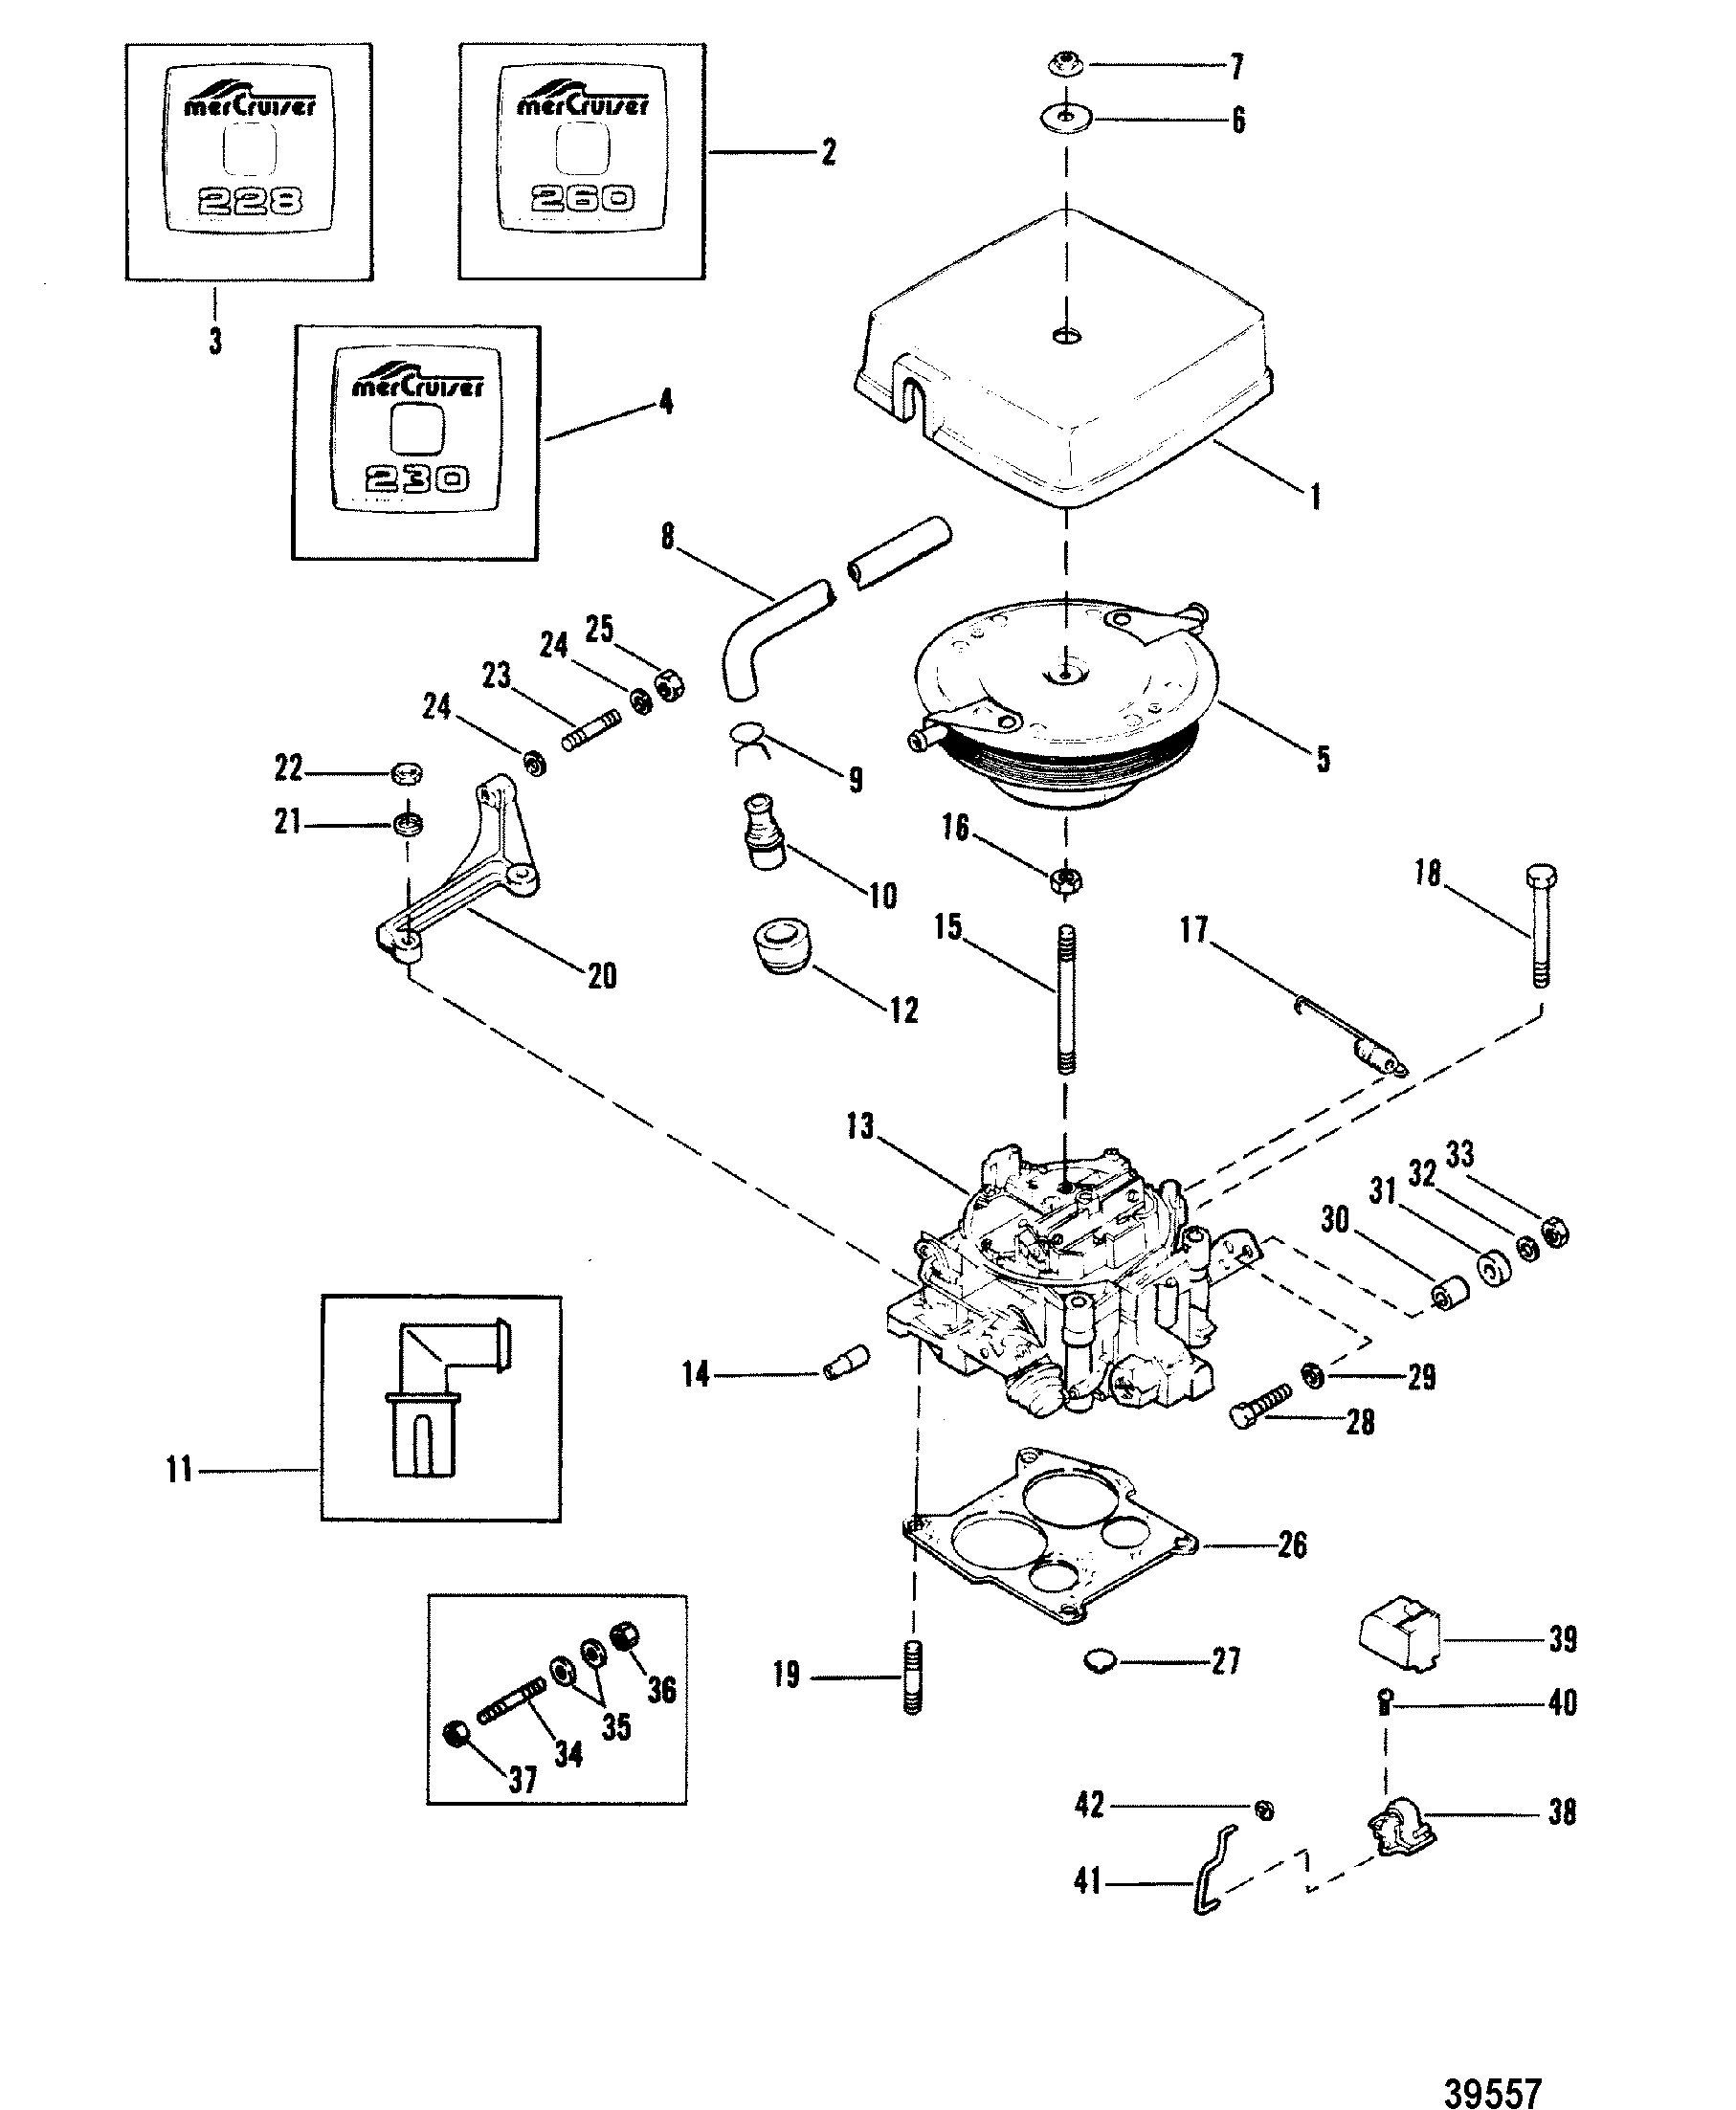 170 Hp Mercruiser Engine Diagram together with Iocooling likewise Mercruiser Denso Wiring Harness furthermore Mercruiser 3 0 Alternator Wiring Diagram besides 985 17. on mercruiser 898 wiring diagram